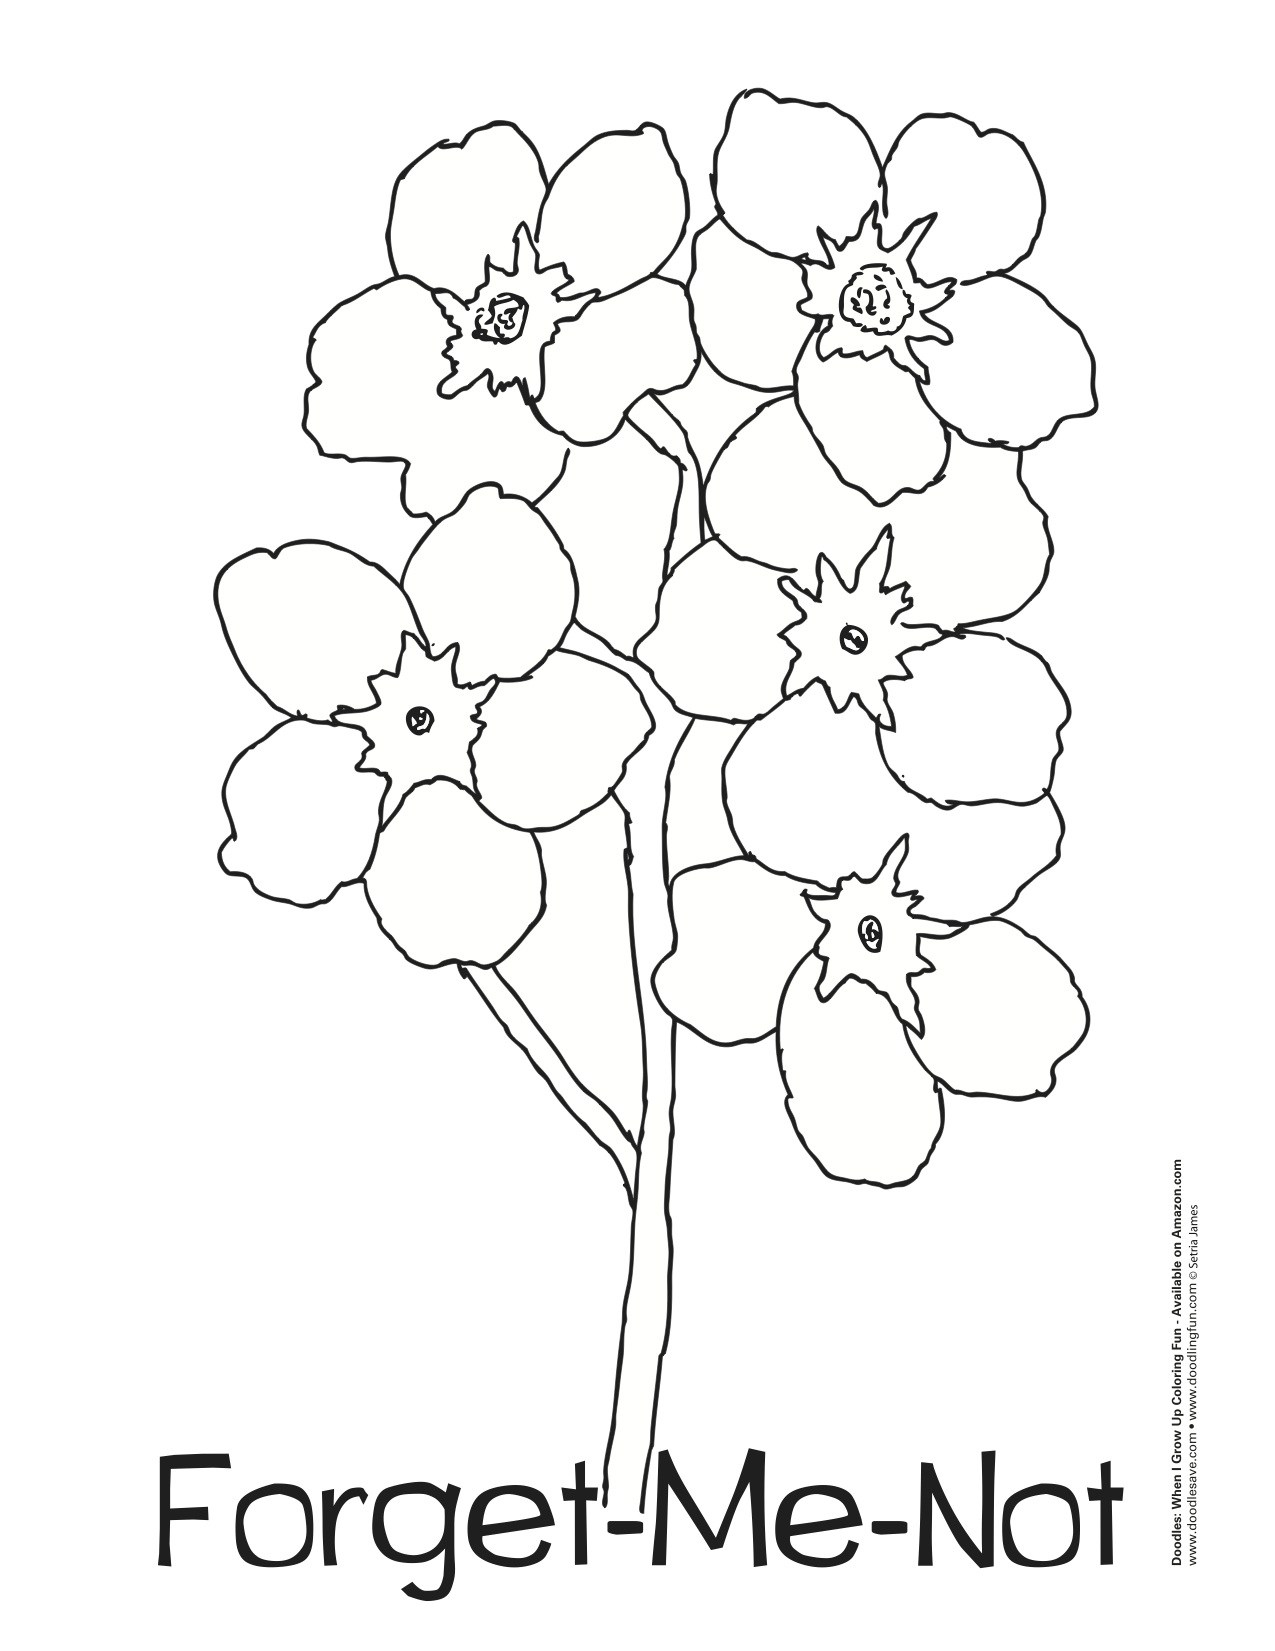 Alpine forget me not clipart outline black and white clip free Forget paintings search result at PaintingValley.com clip free